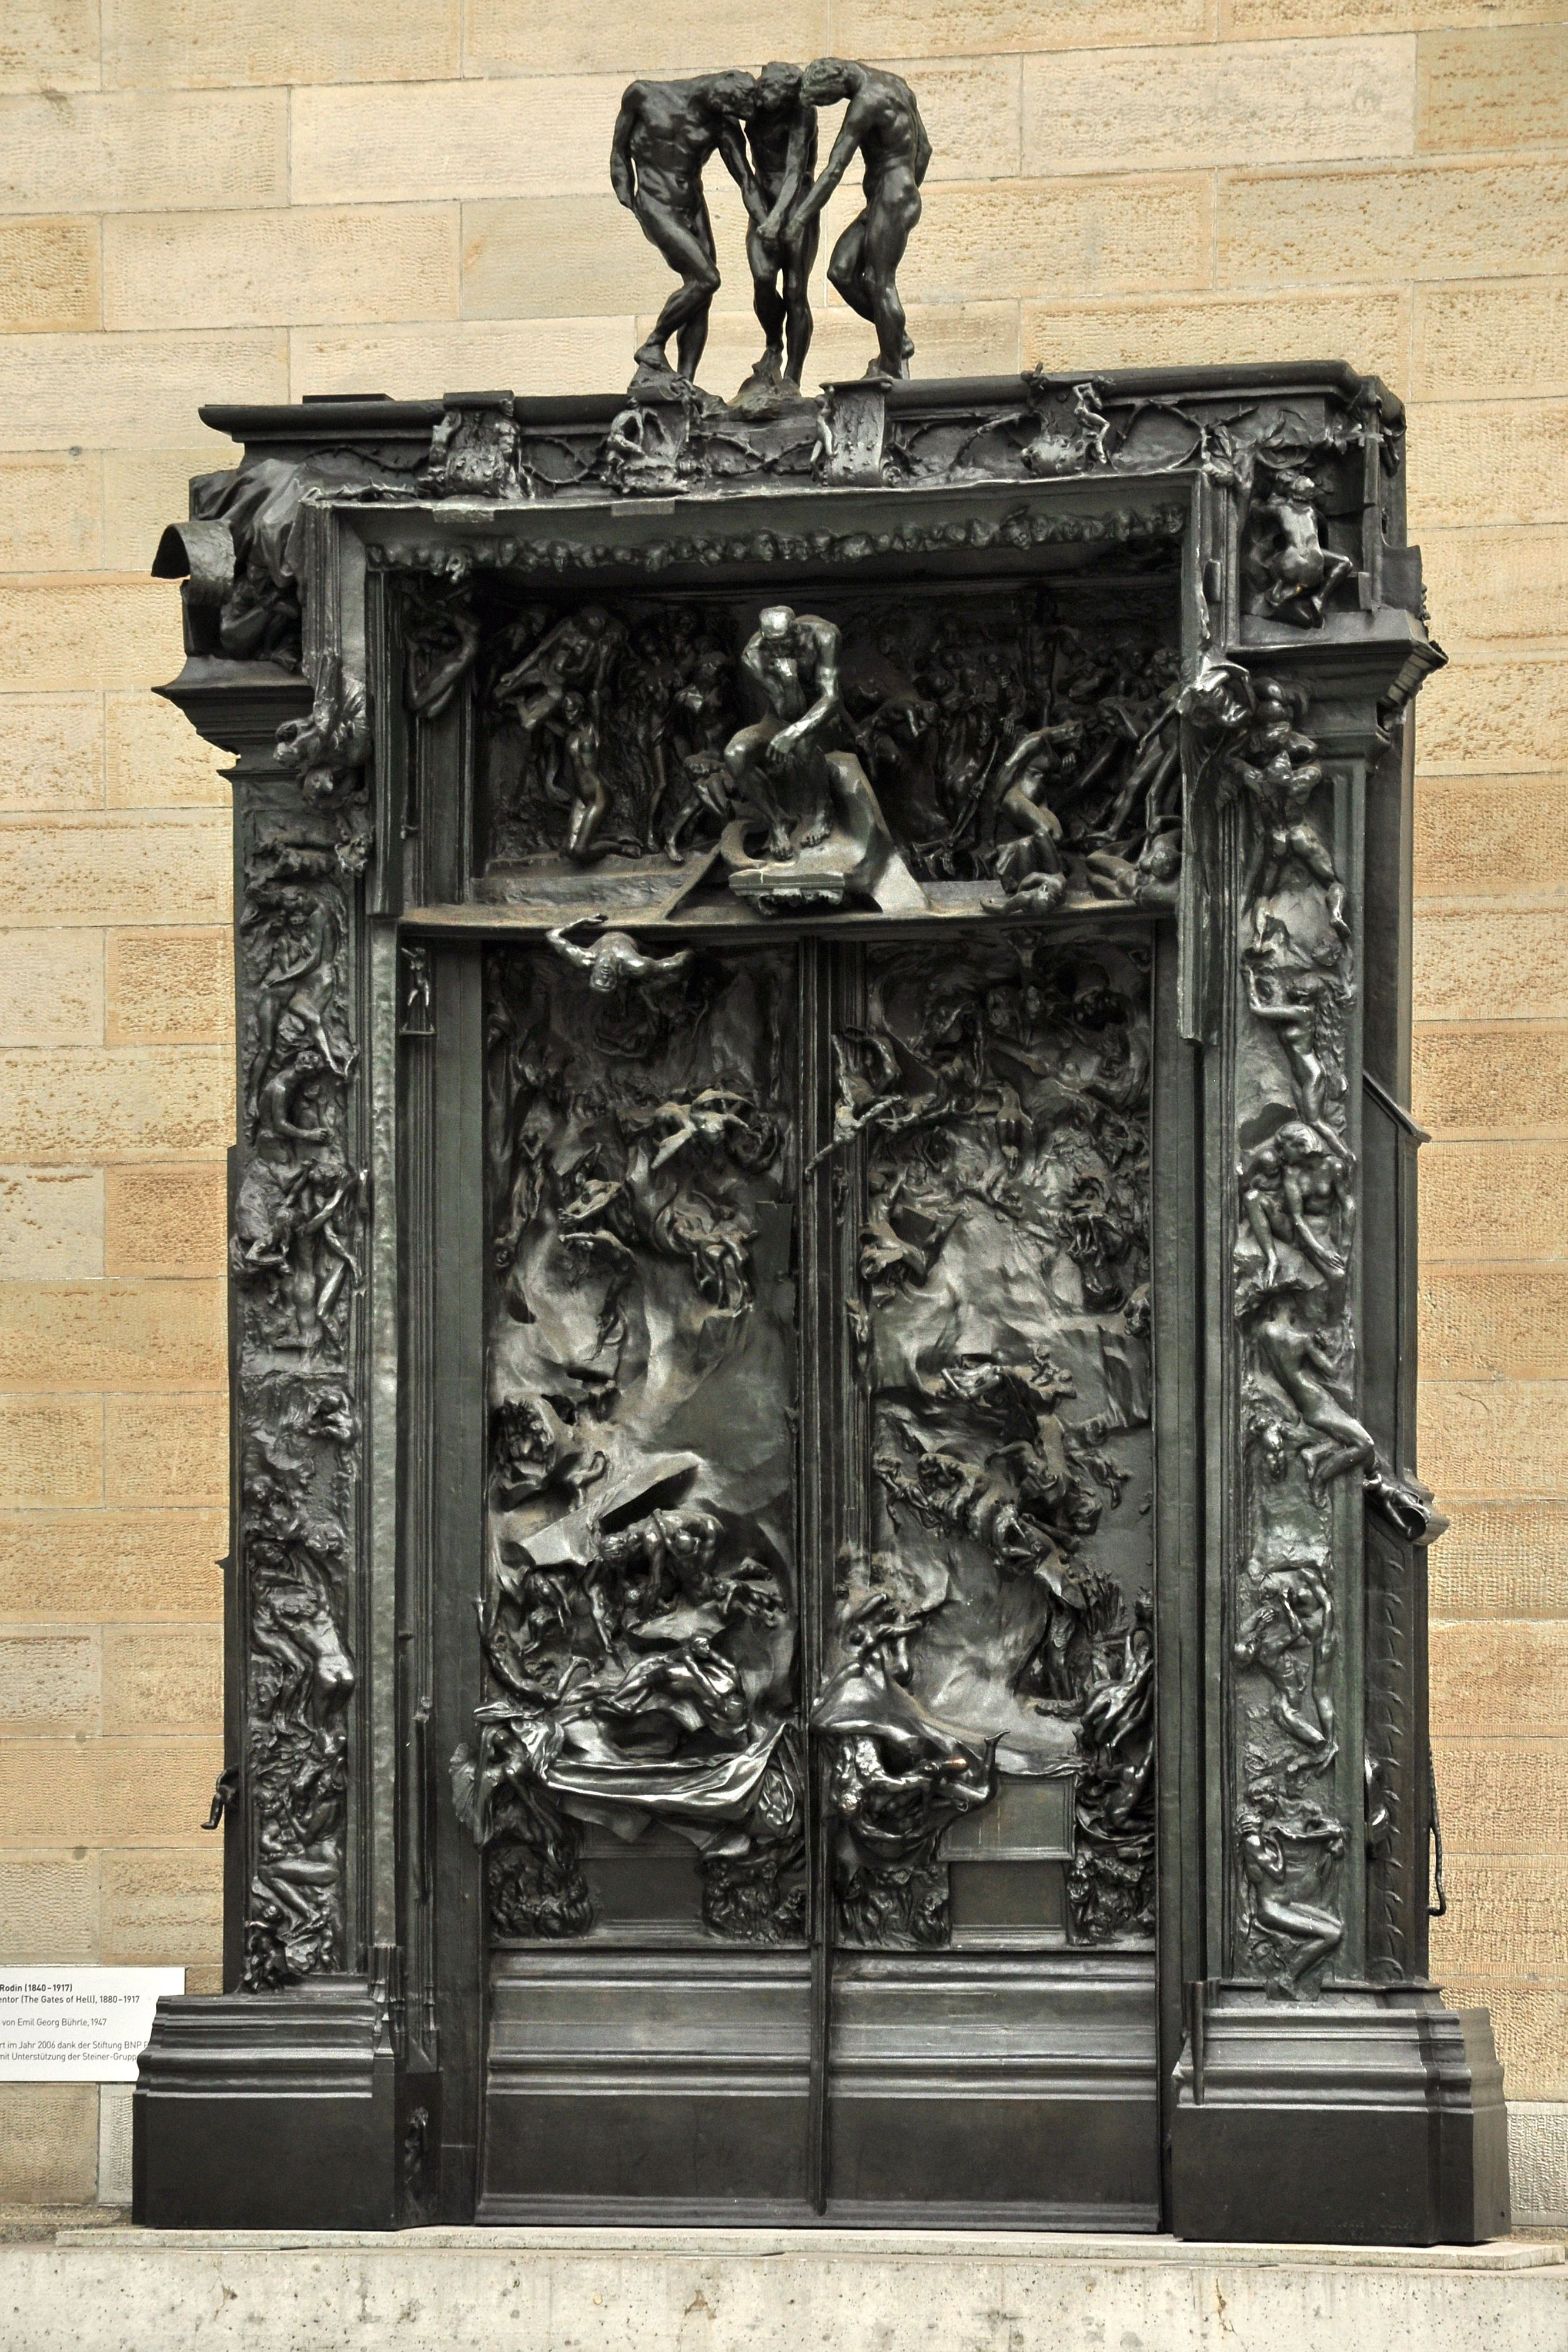 """The Gates of Hell (French: La Porte de l'Enfer) is a monumental sculptural group work by French artist Auguste Rodin that depicts a scene from """"The Inferno"""", the first section of Dante Alighieri's Divine Comedy."""